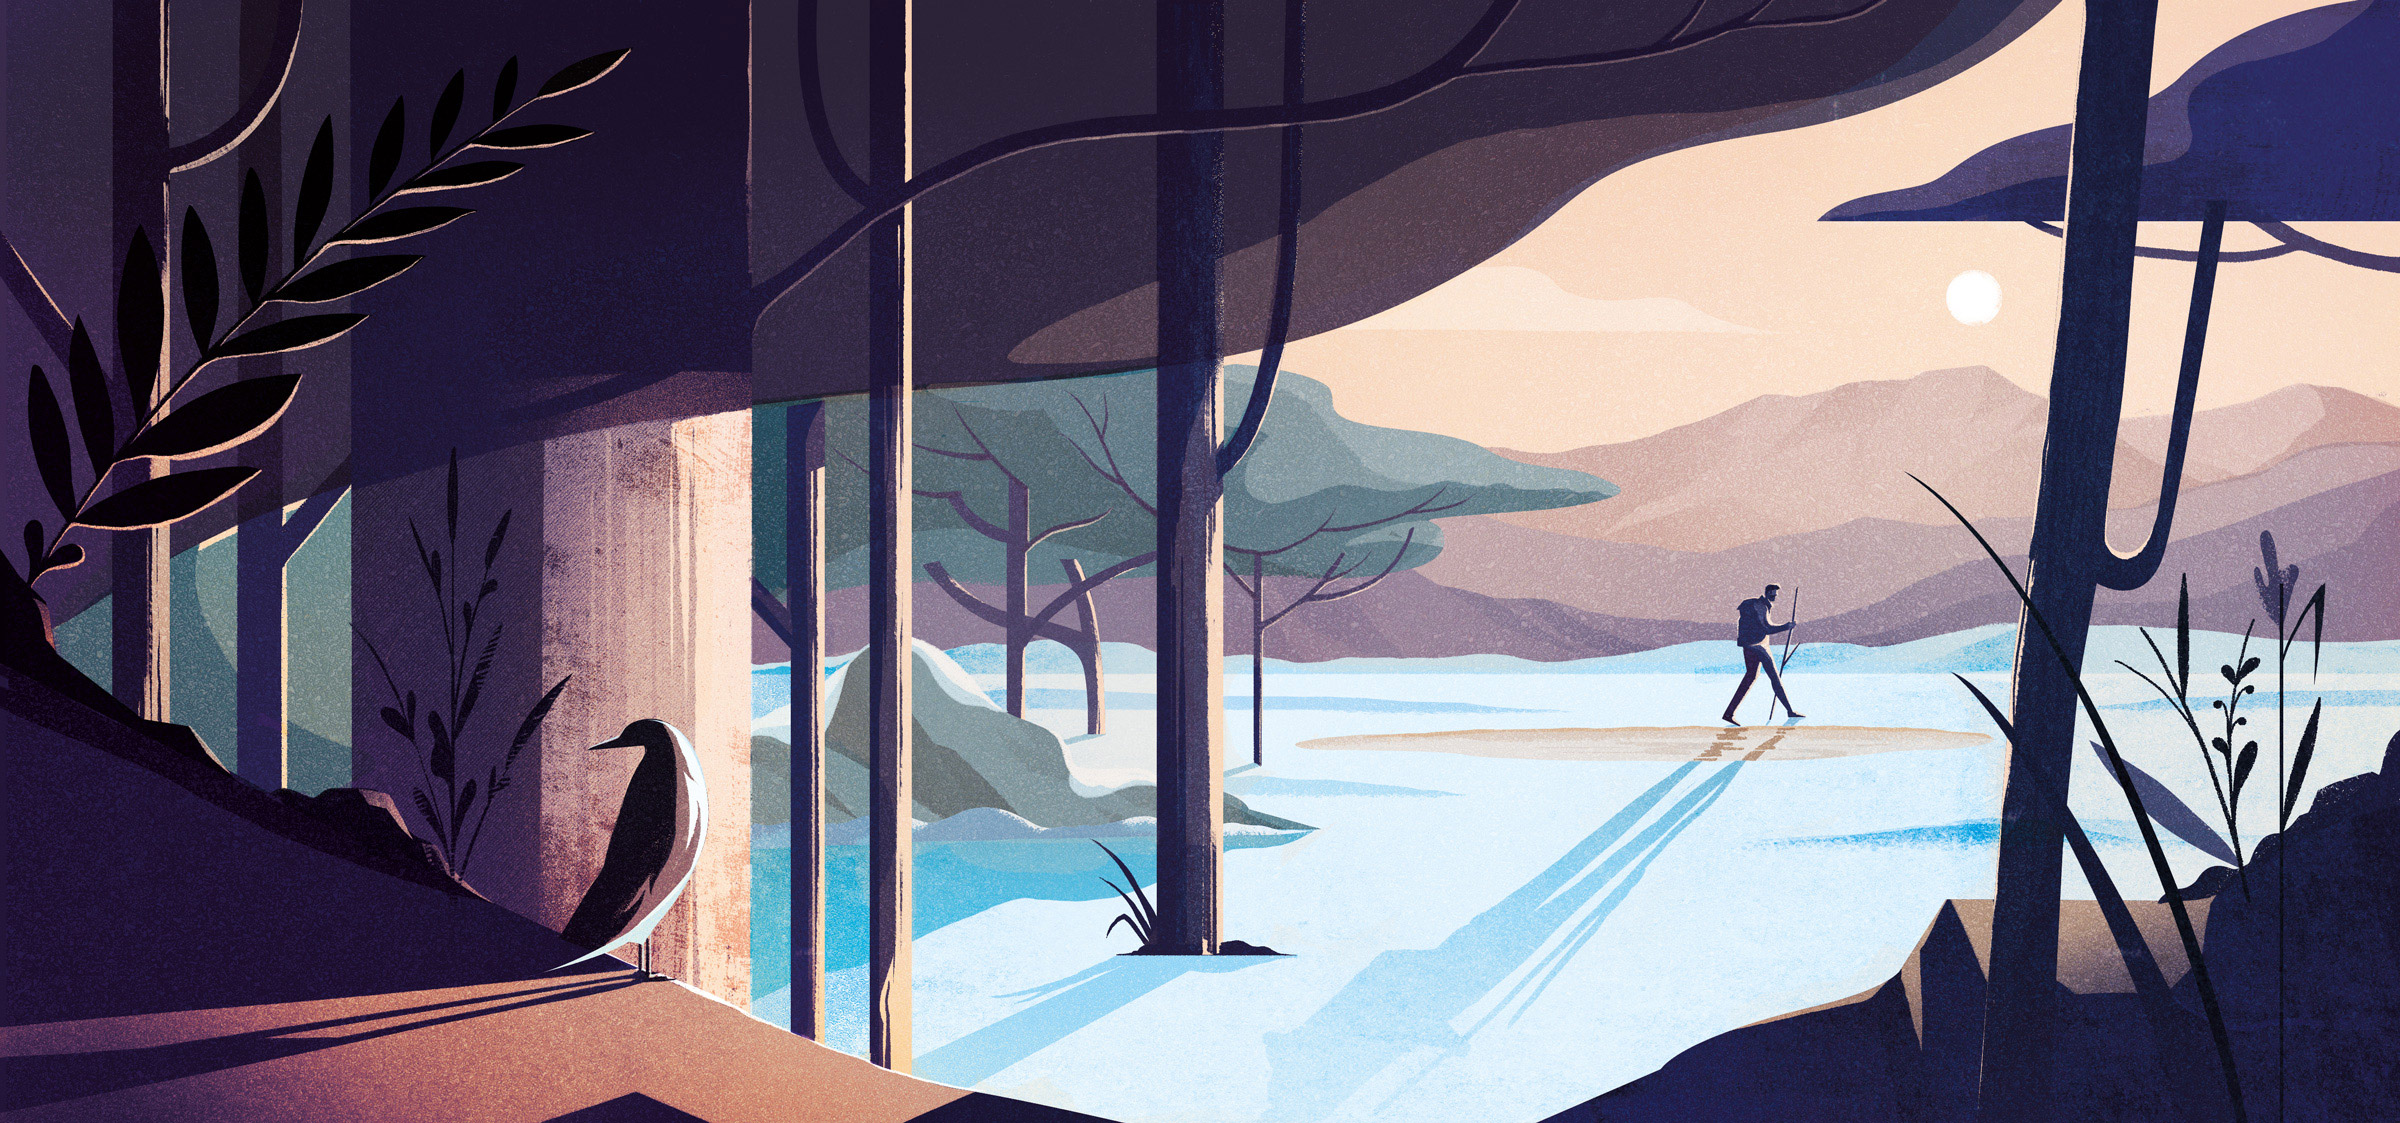 Use the Pen tool and textures to add depth in Photoshop